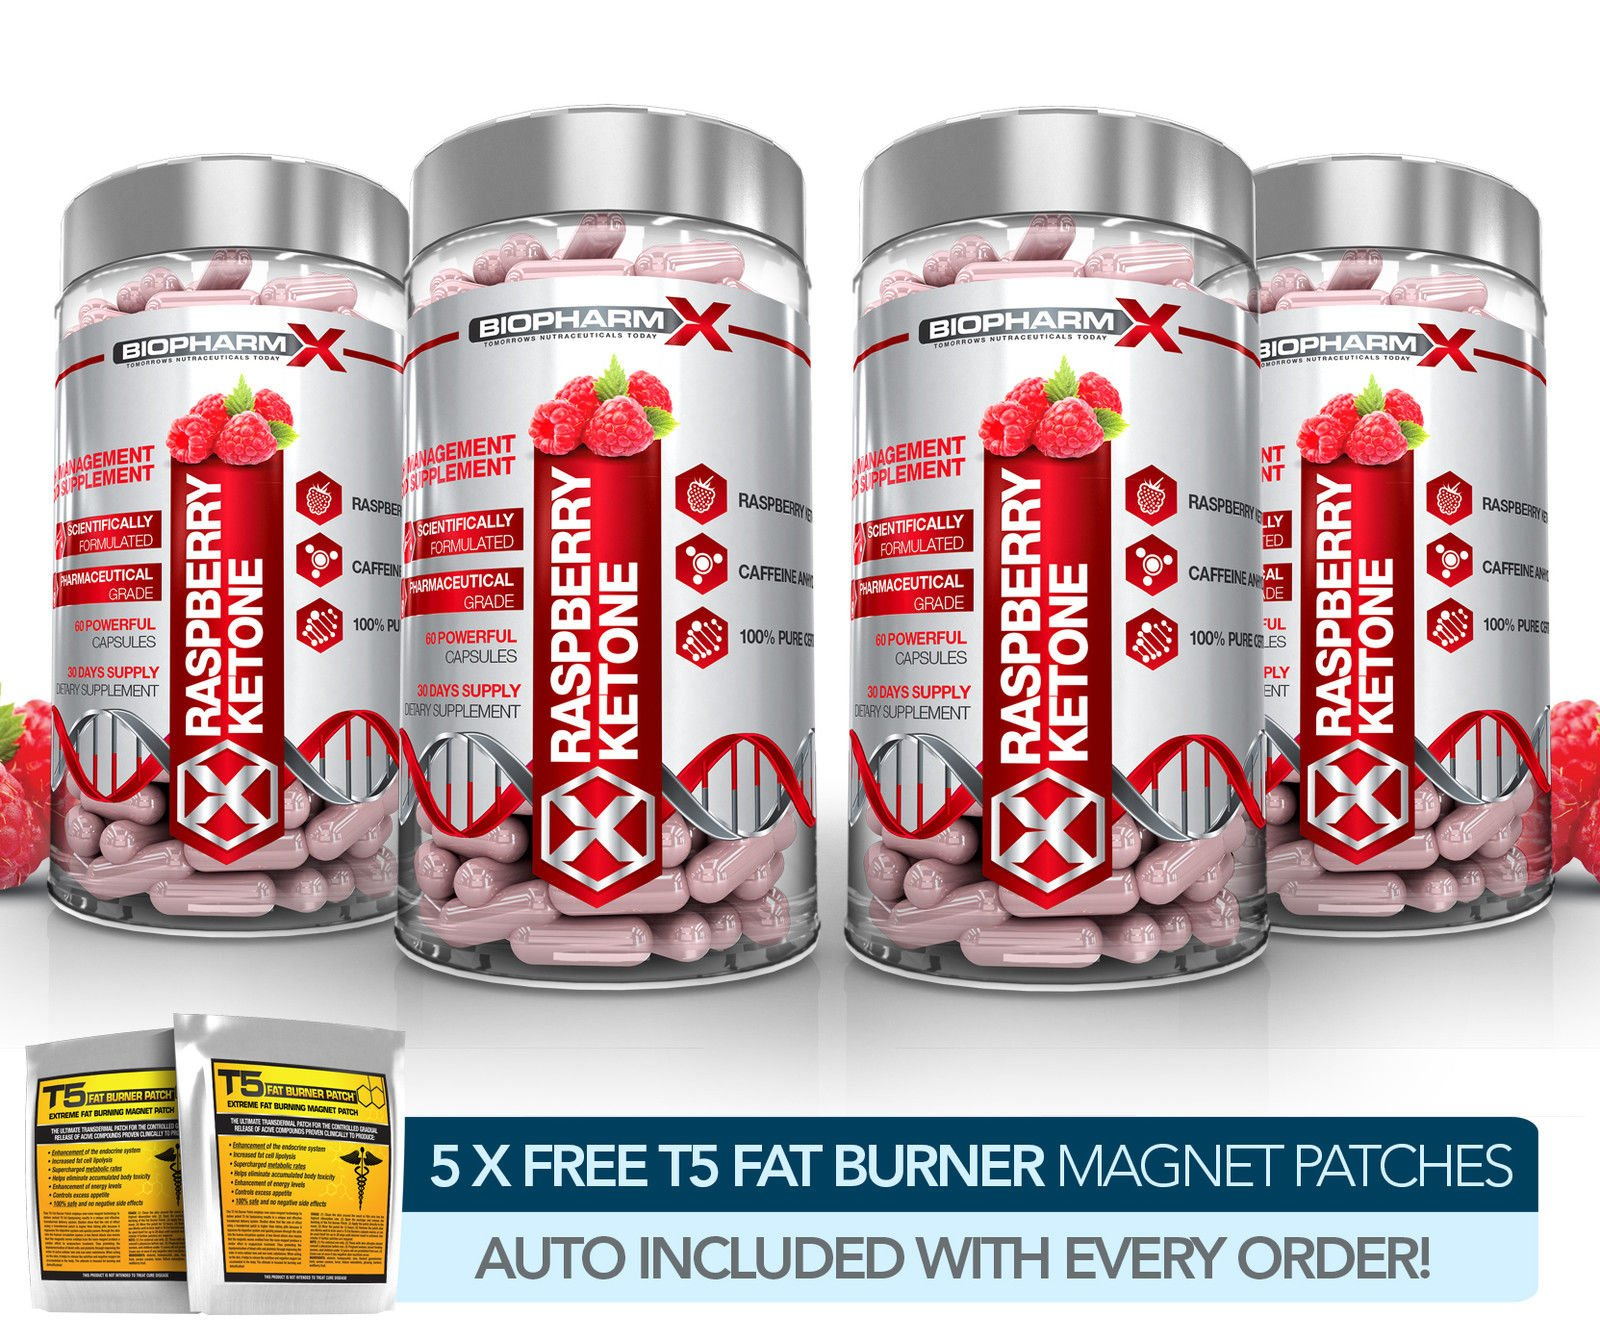 X4 100% PURE RASPBERRY KETONES - STRONGEST SLIMMING / DIET & WEIGHT LOSS PILLS